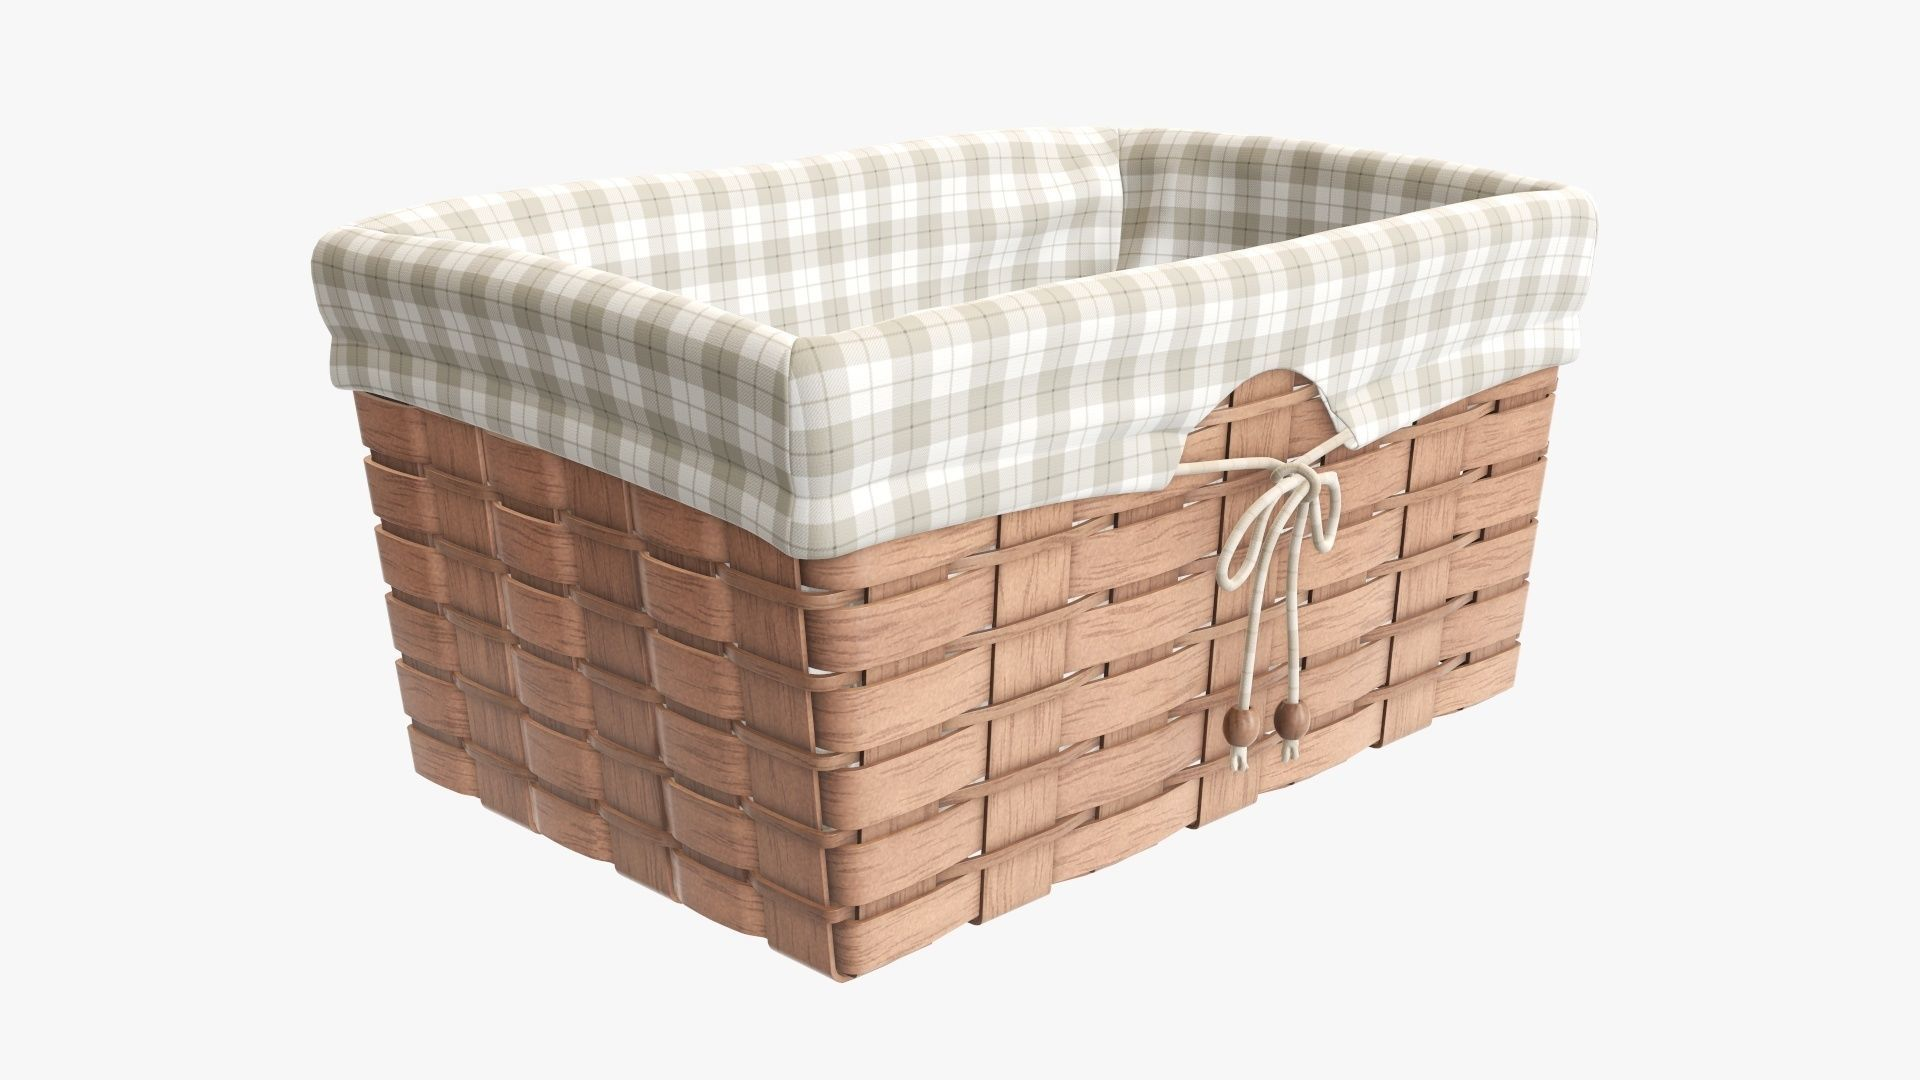 Wicker basket light brown with fabric interior